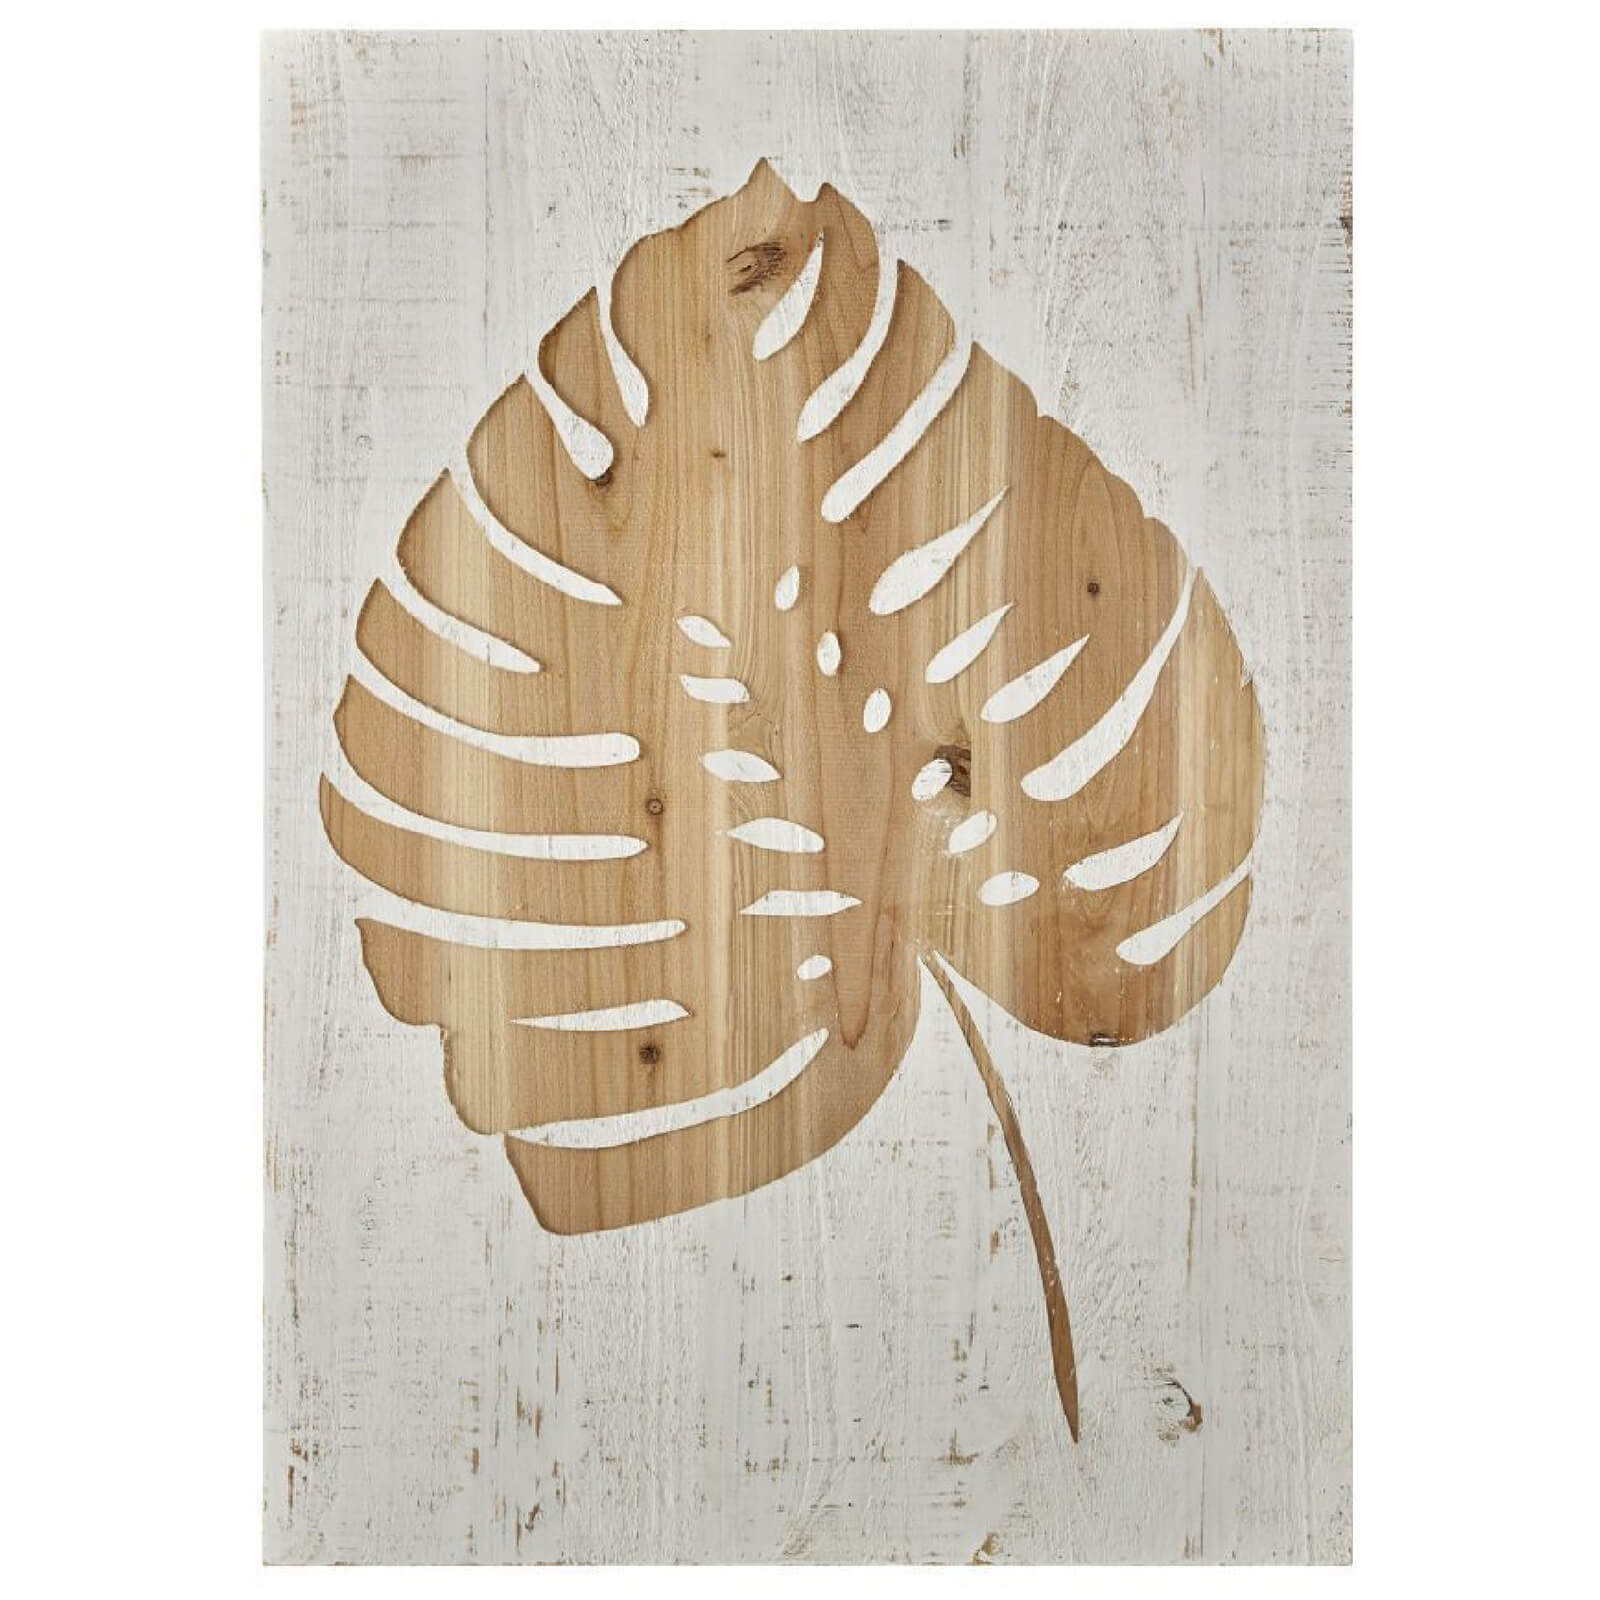 Art for the Home Tropical Leaf Wood Panel